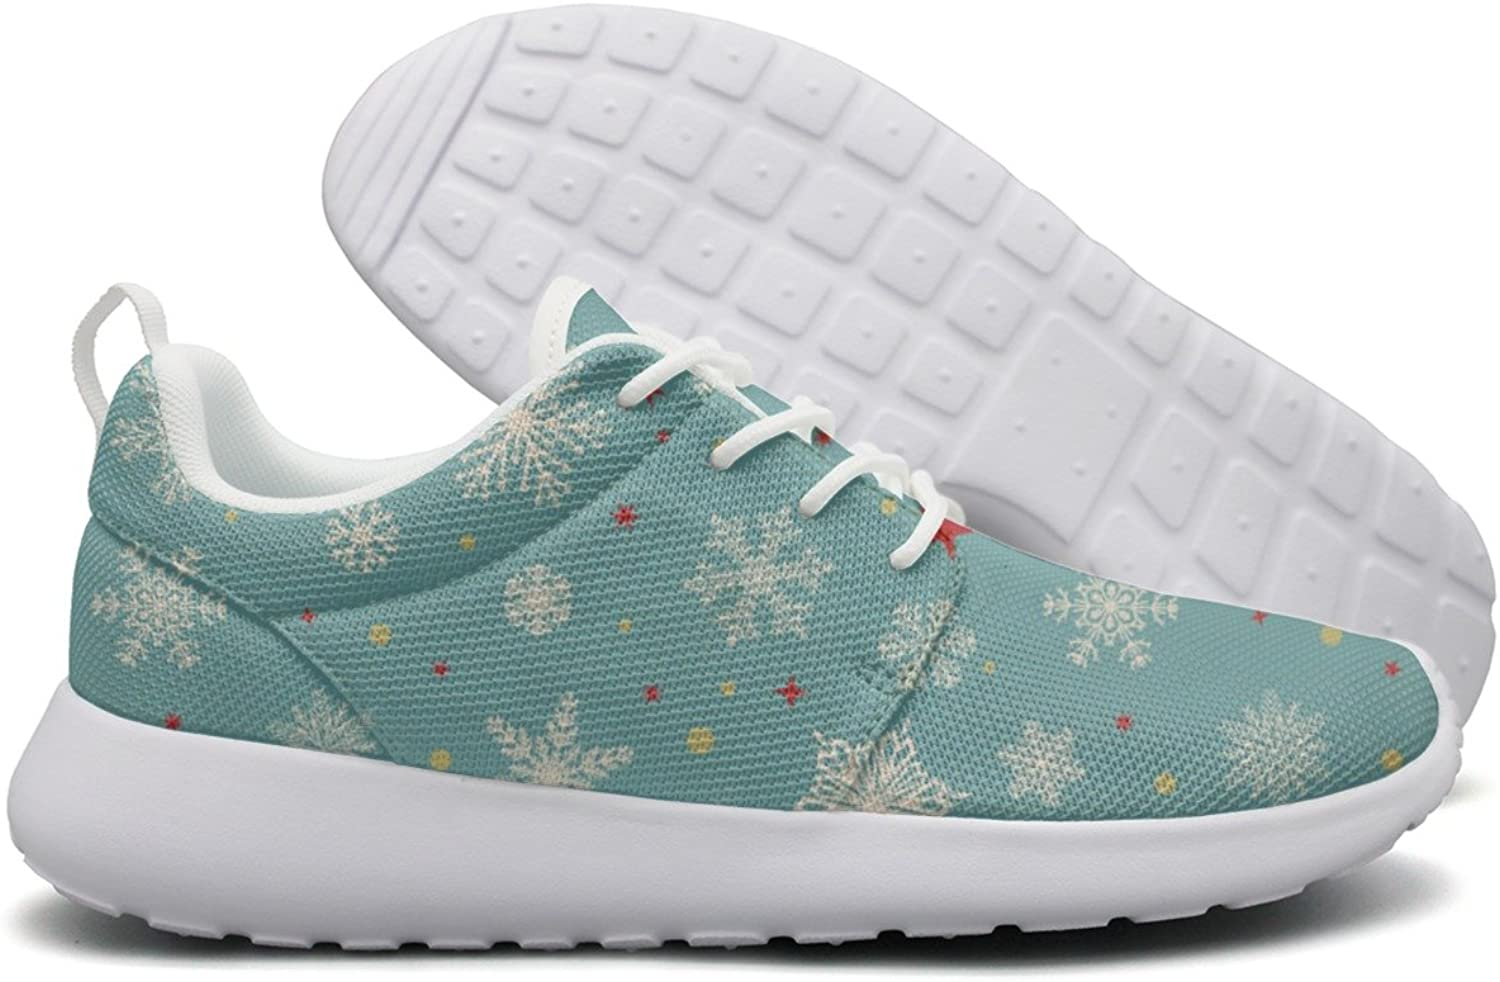 Opr7 White Snowflake on Light bluee Running shoes Lightweight for Women Sneaker Lace-up Shock Absorbing